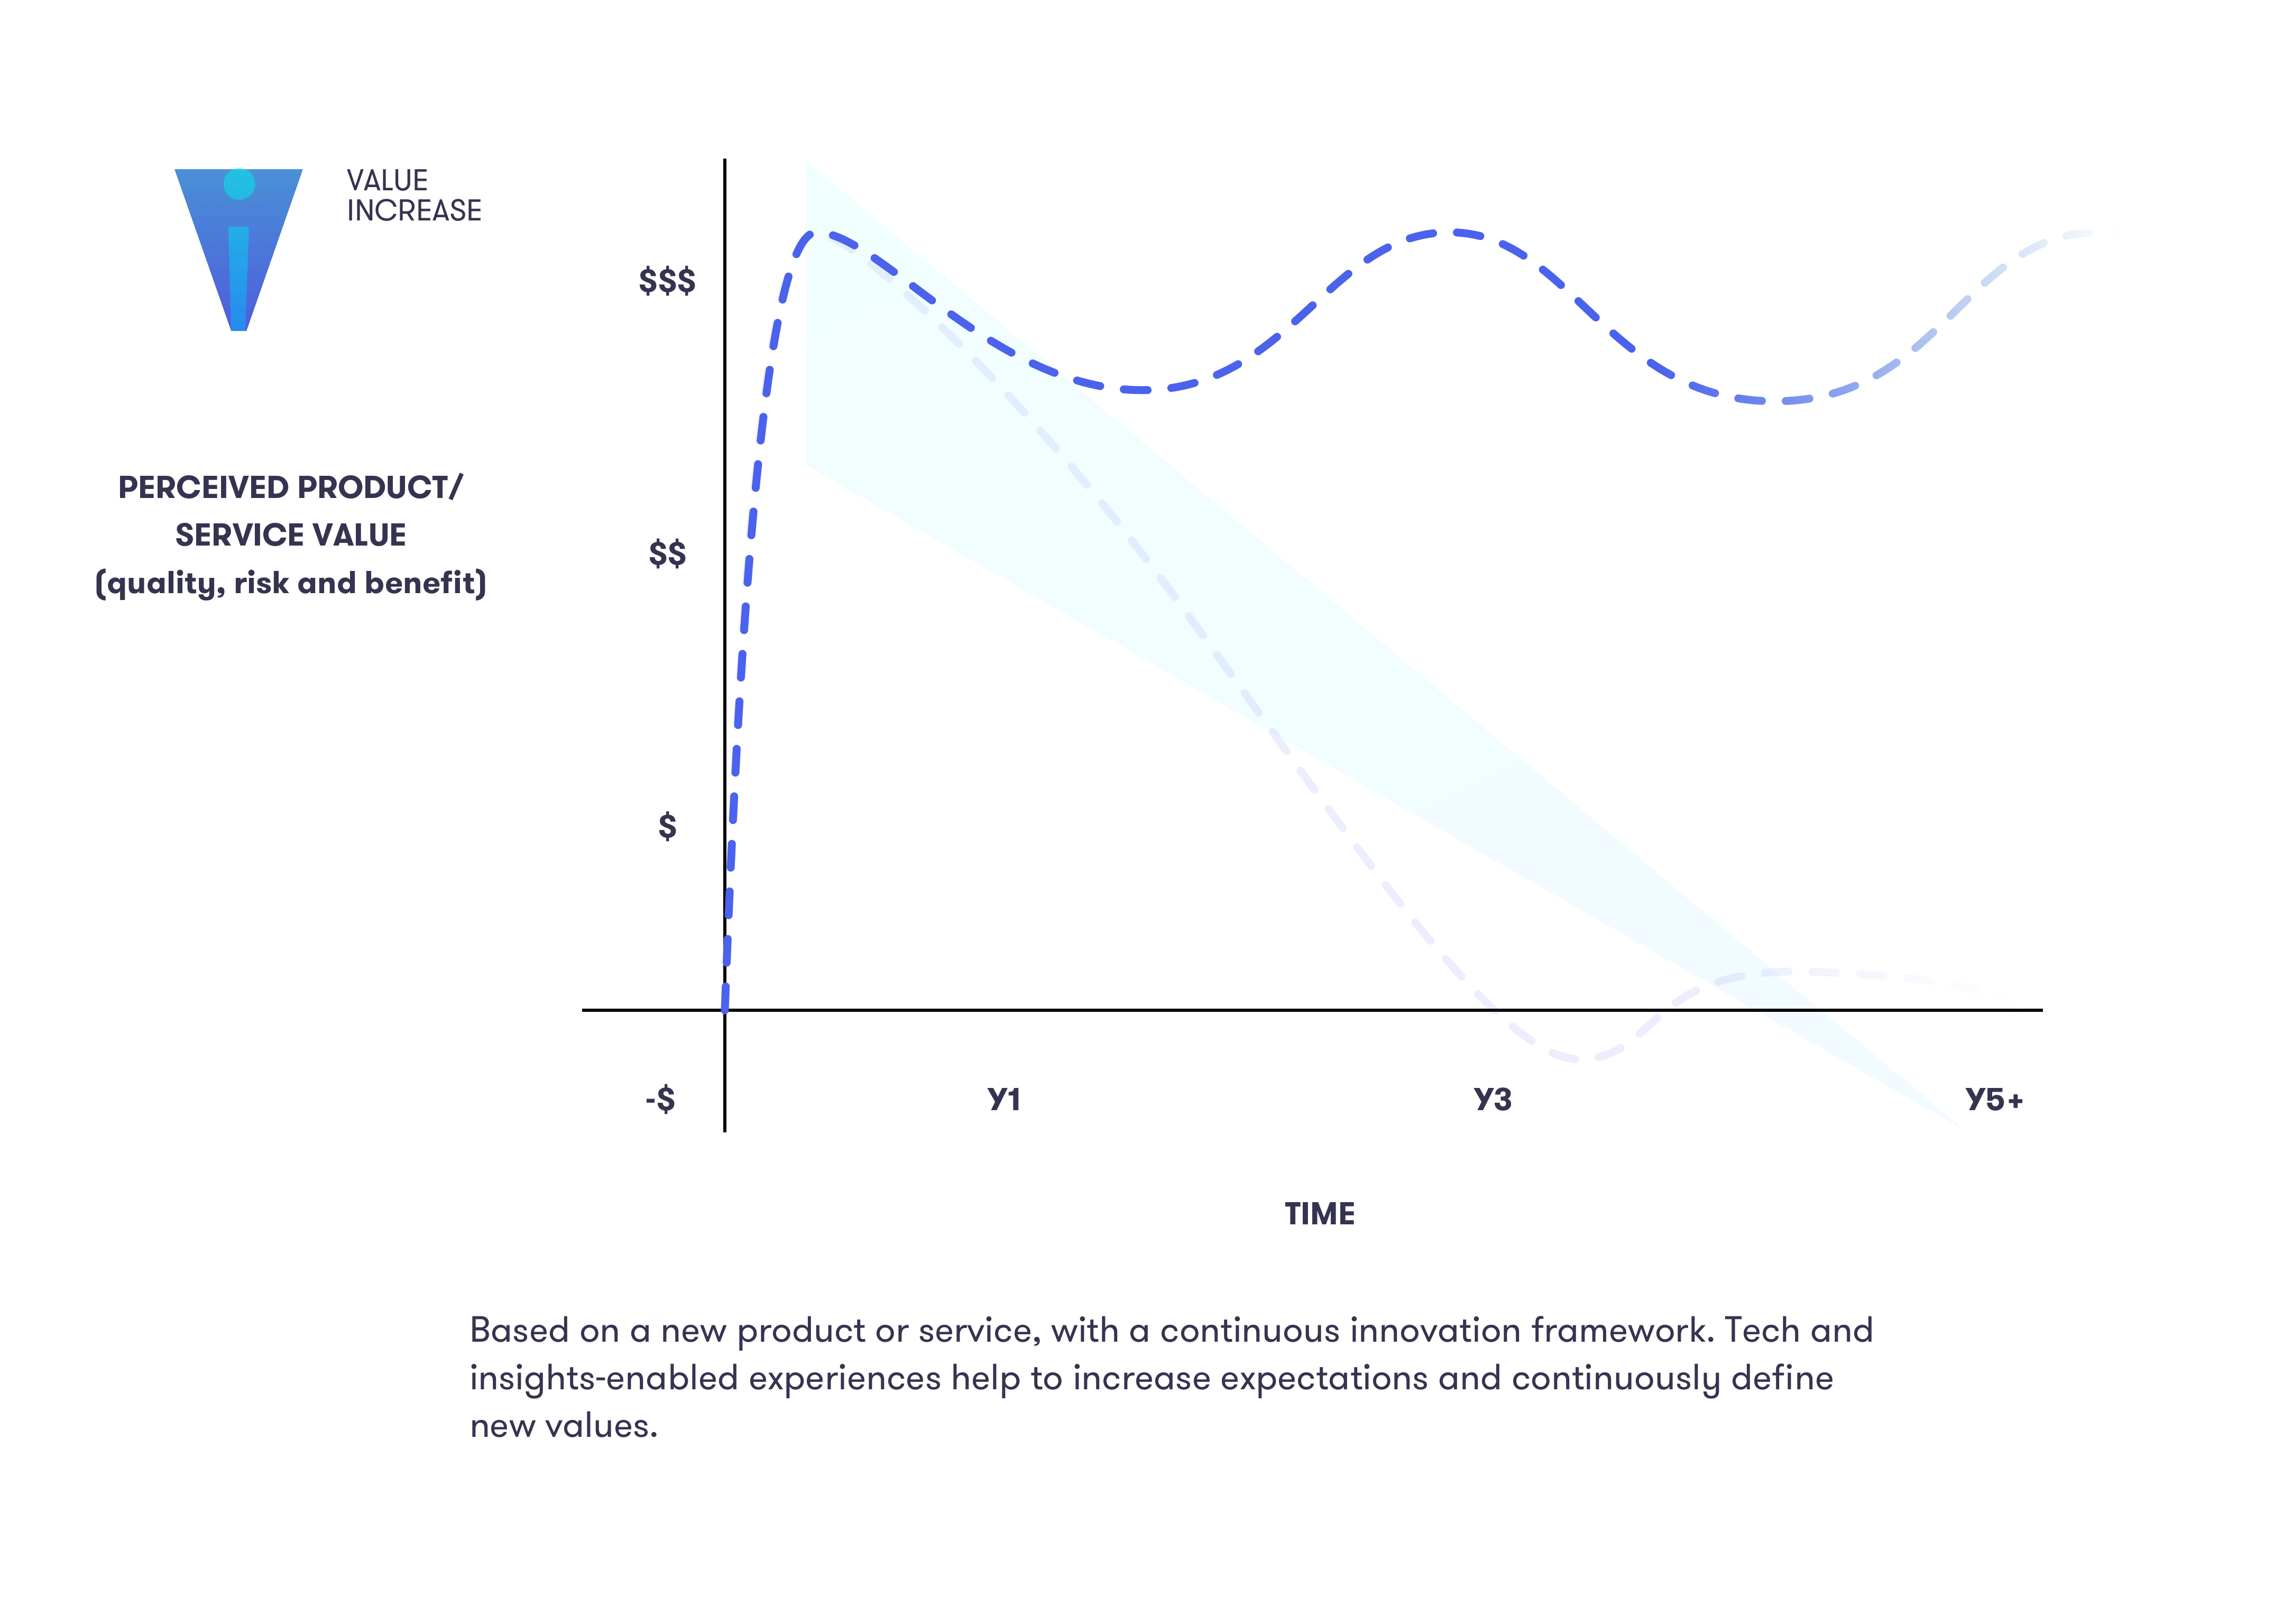 PERCEIVED PRODUCT/ SERVICE VALUE (quality, risk and benefit) over time. Based on a new product or service, with a continuous innovation framework. Tech and insights-enabled experiences help to increase expectations and continuously define new values.